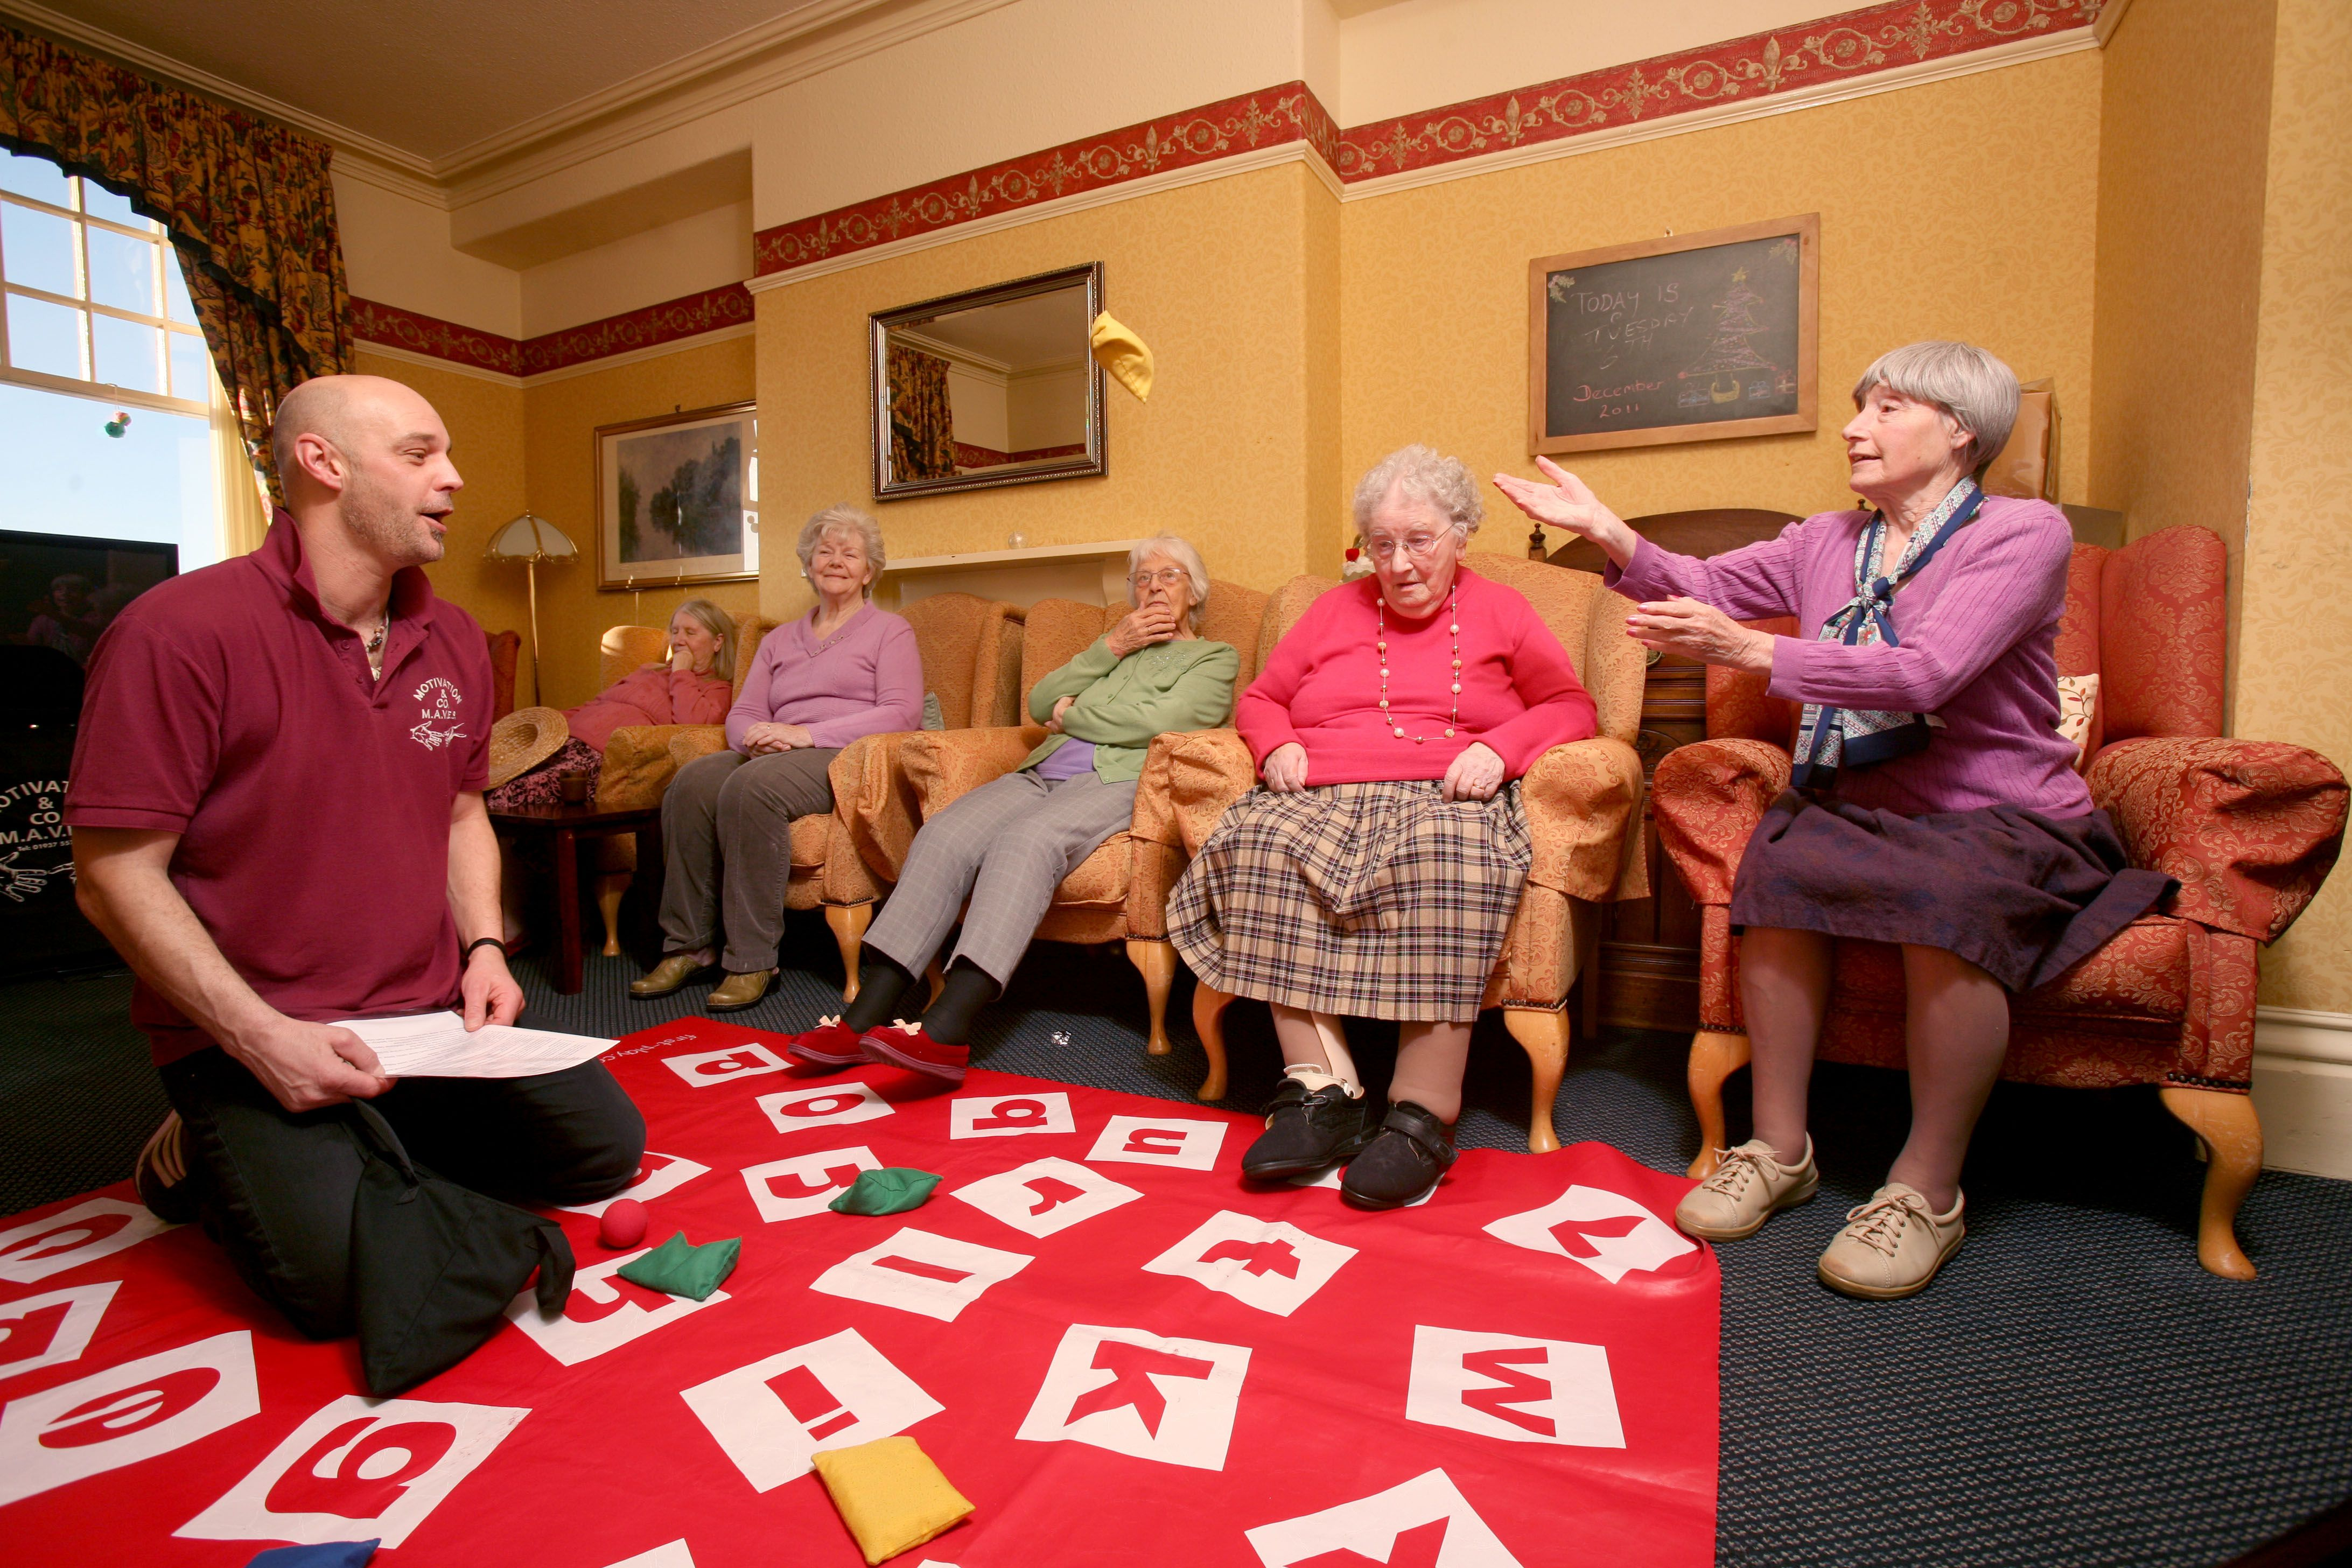 Peregrine house care home organises group activities for